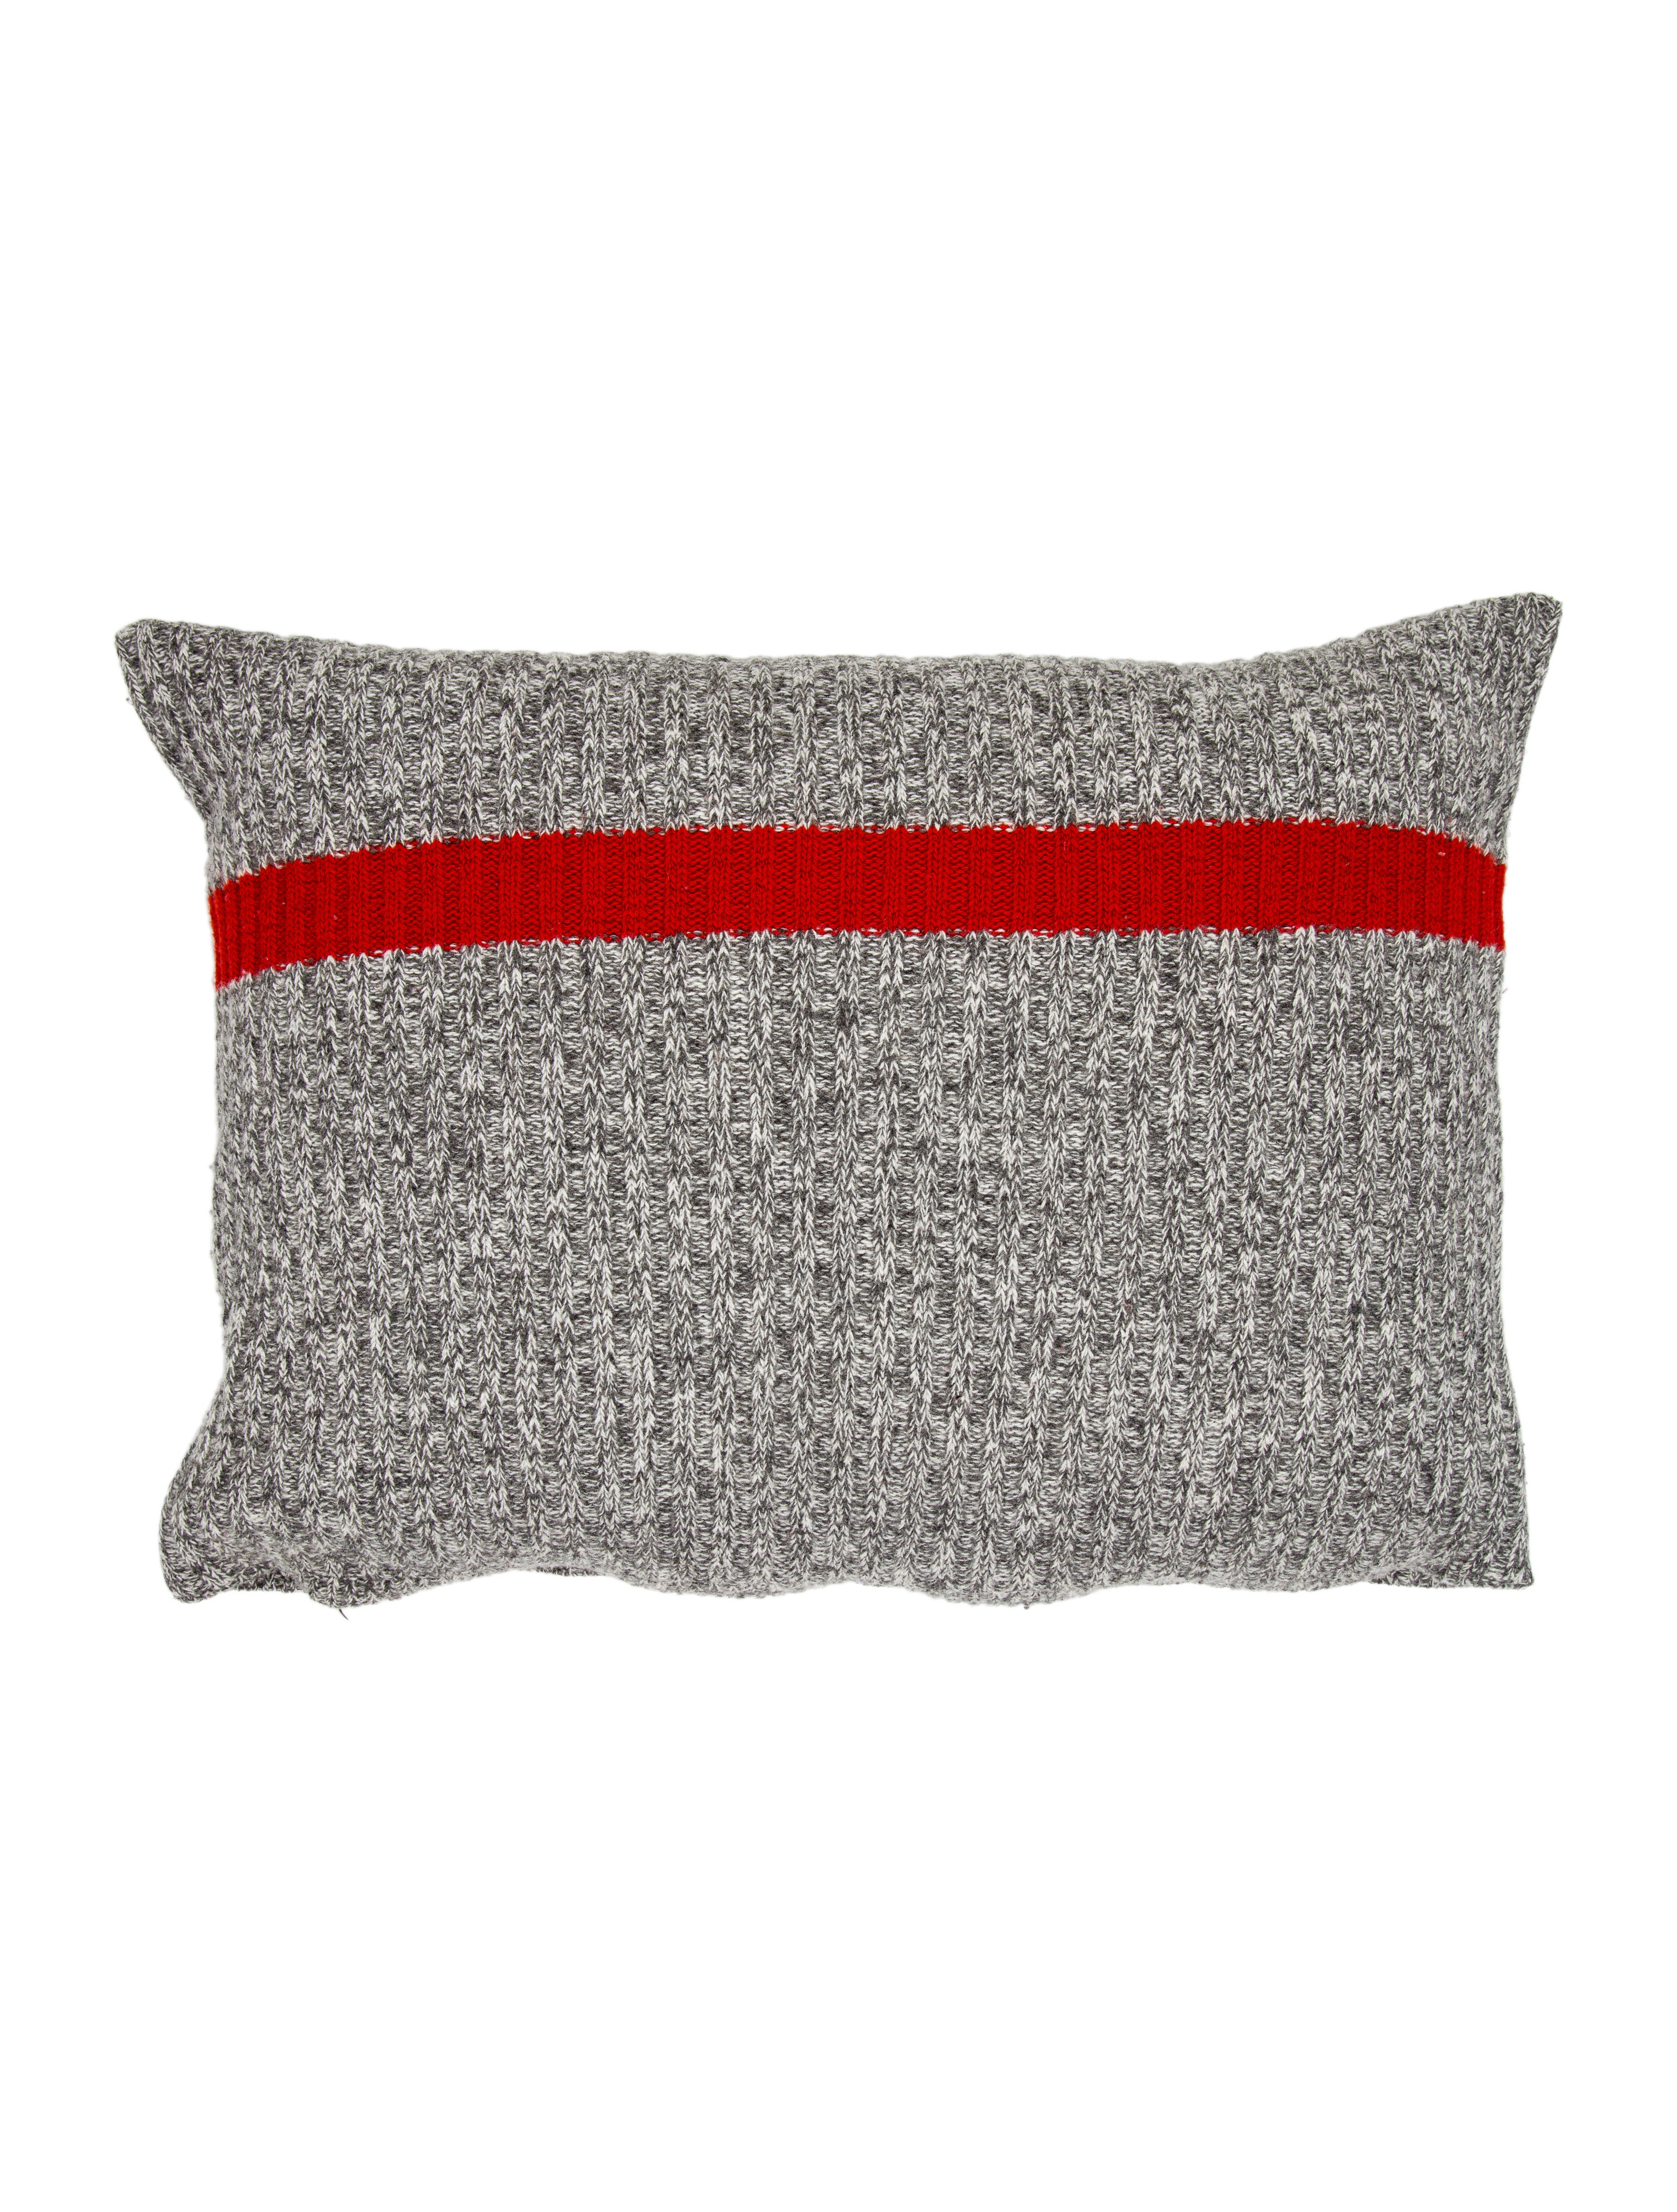 Ralph Lauren Lambswool Throw Pillow - Pillows And Throws - WYG21885 The RealReal